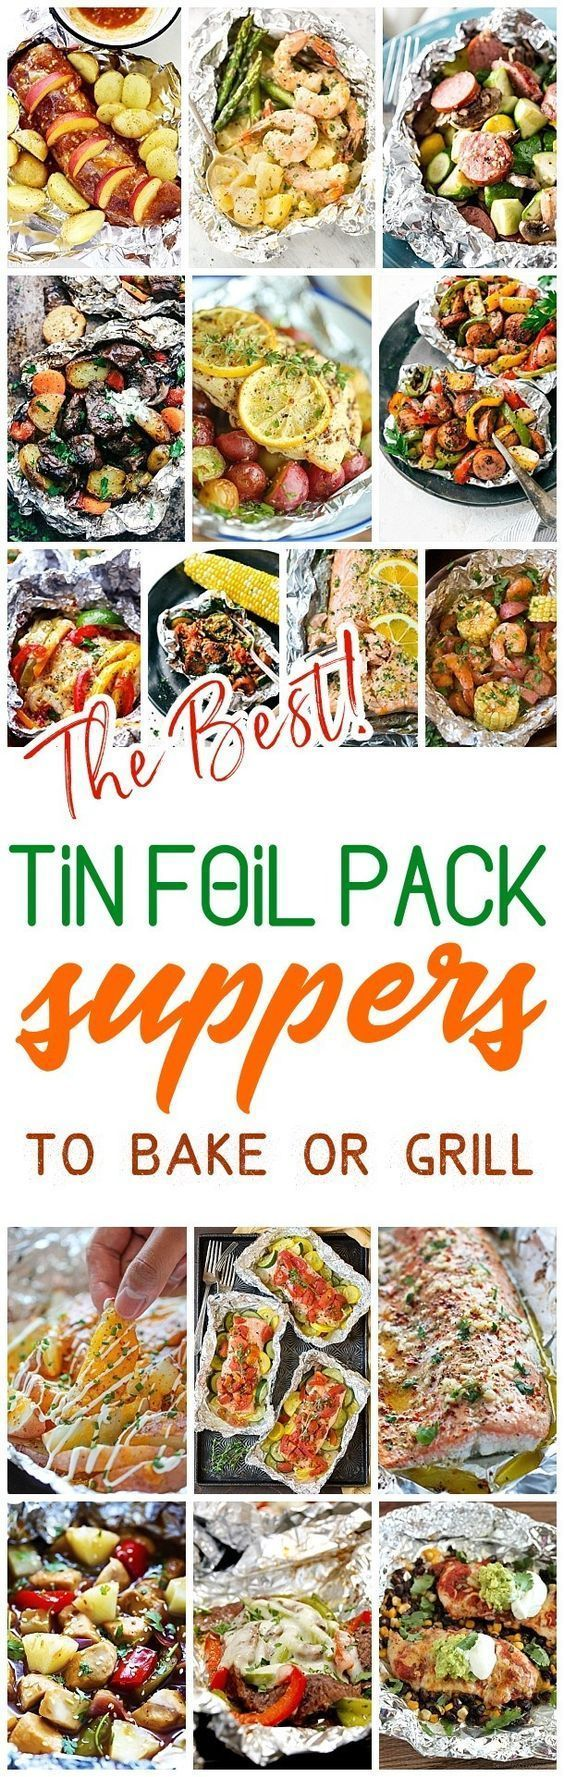 Recipes to prepare in the oven or grill in the best package of sheets of aluminum foil …   – camp fire food